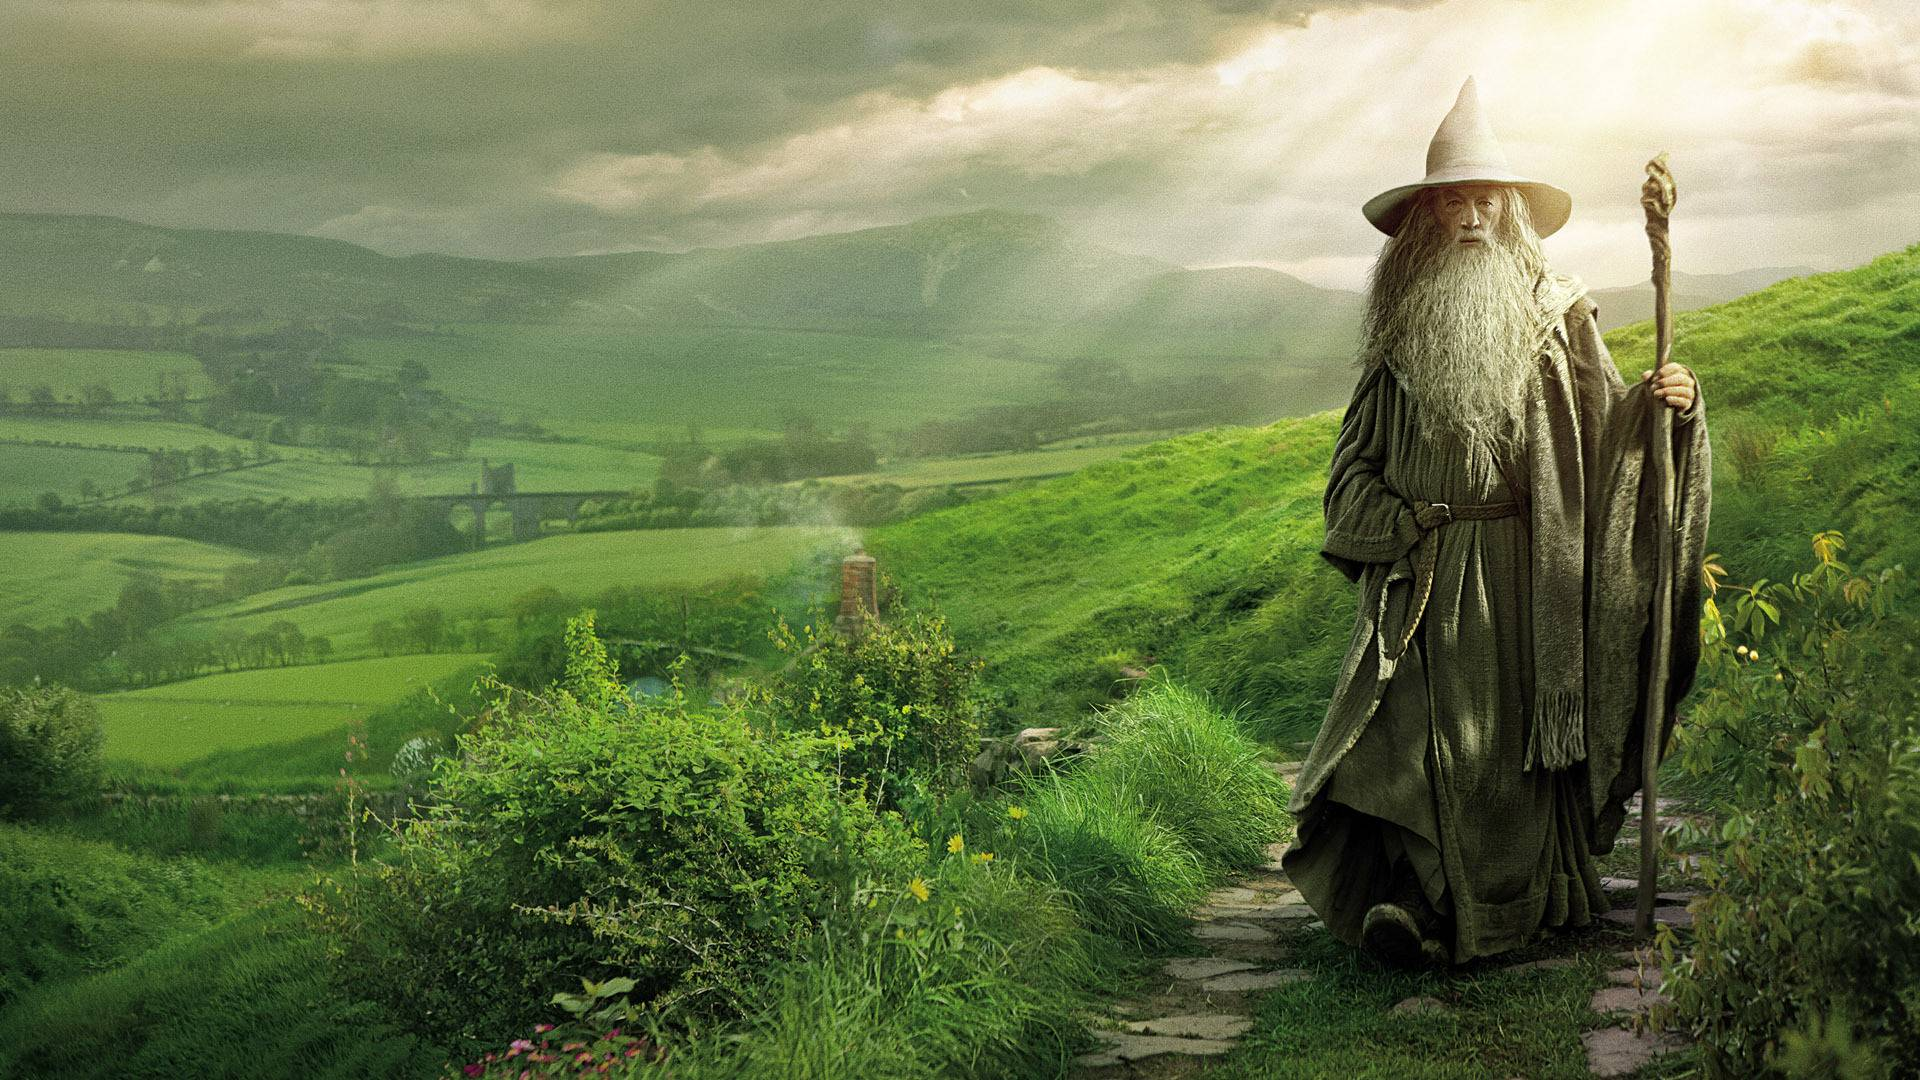 The Hobbit Wallpaper 1920x1080 The hobbit an unexpected 1920x1080